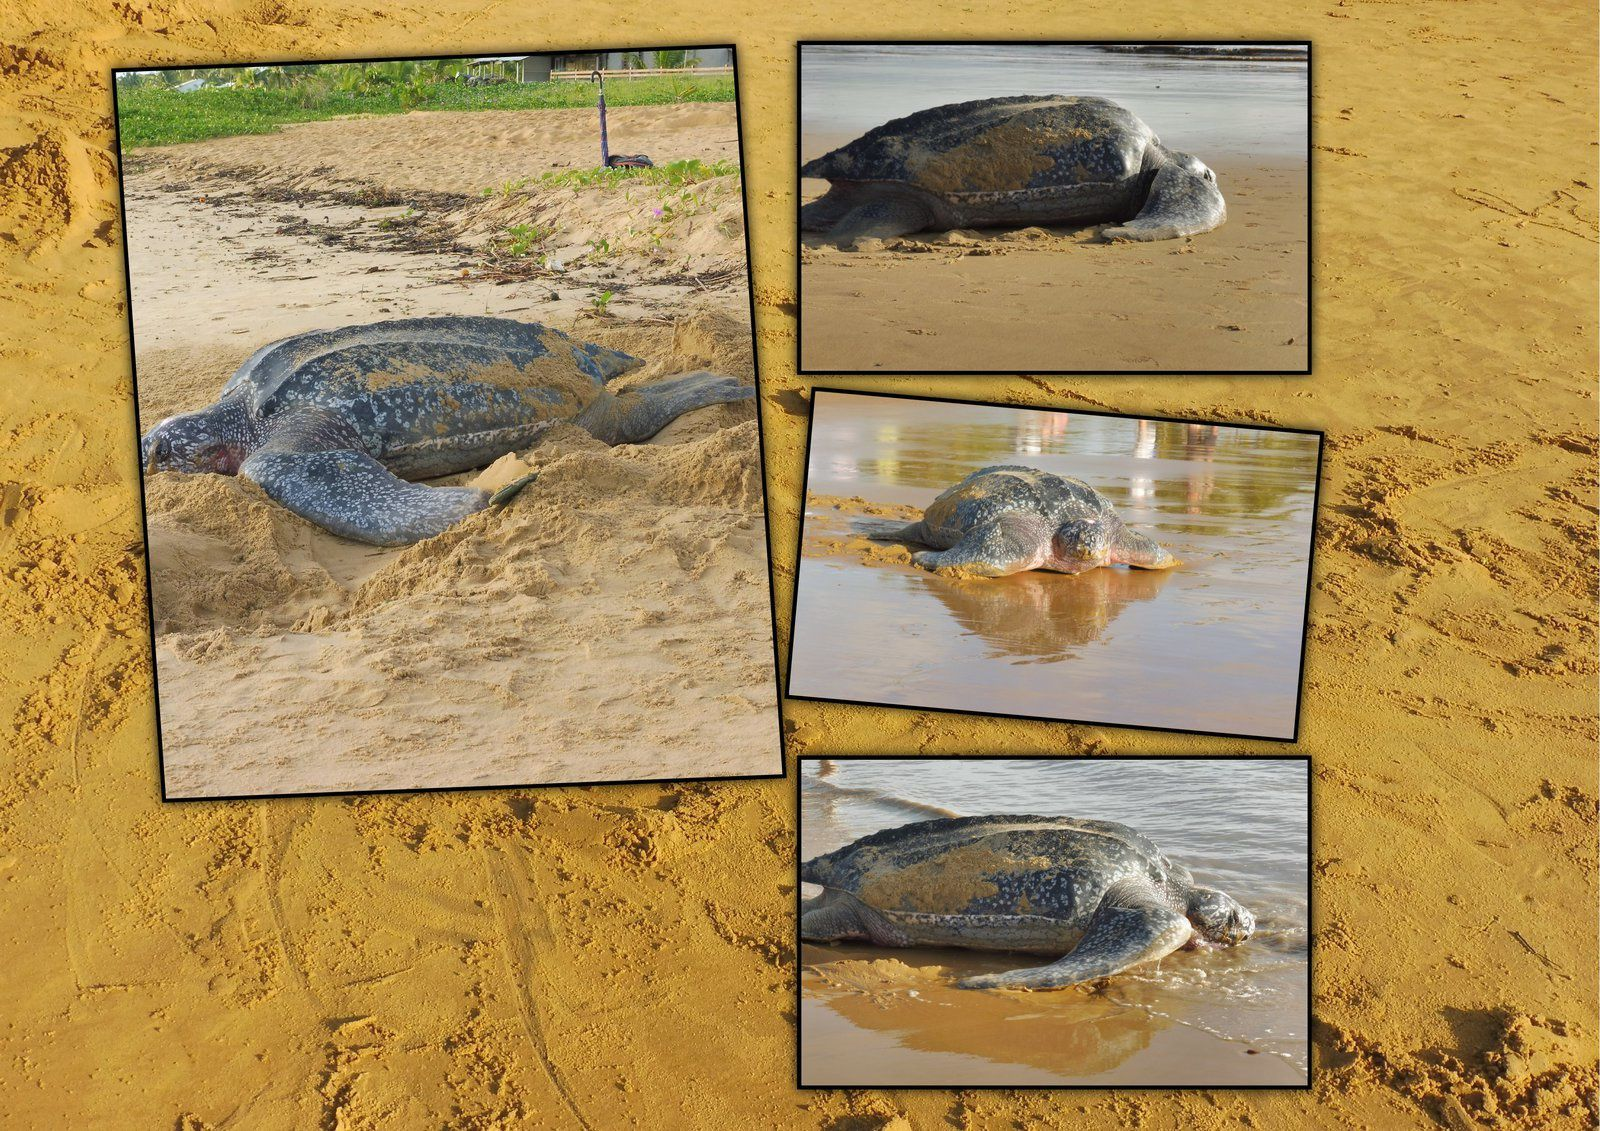 Les tortues luth